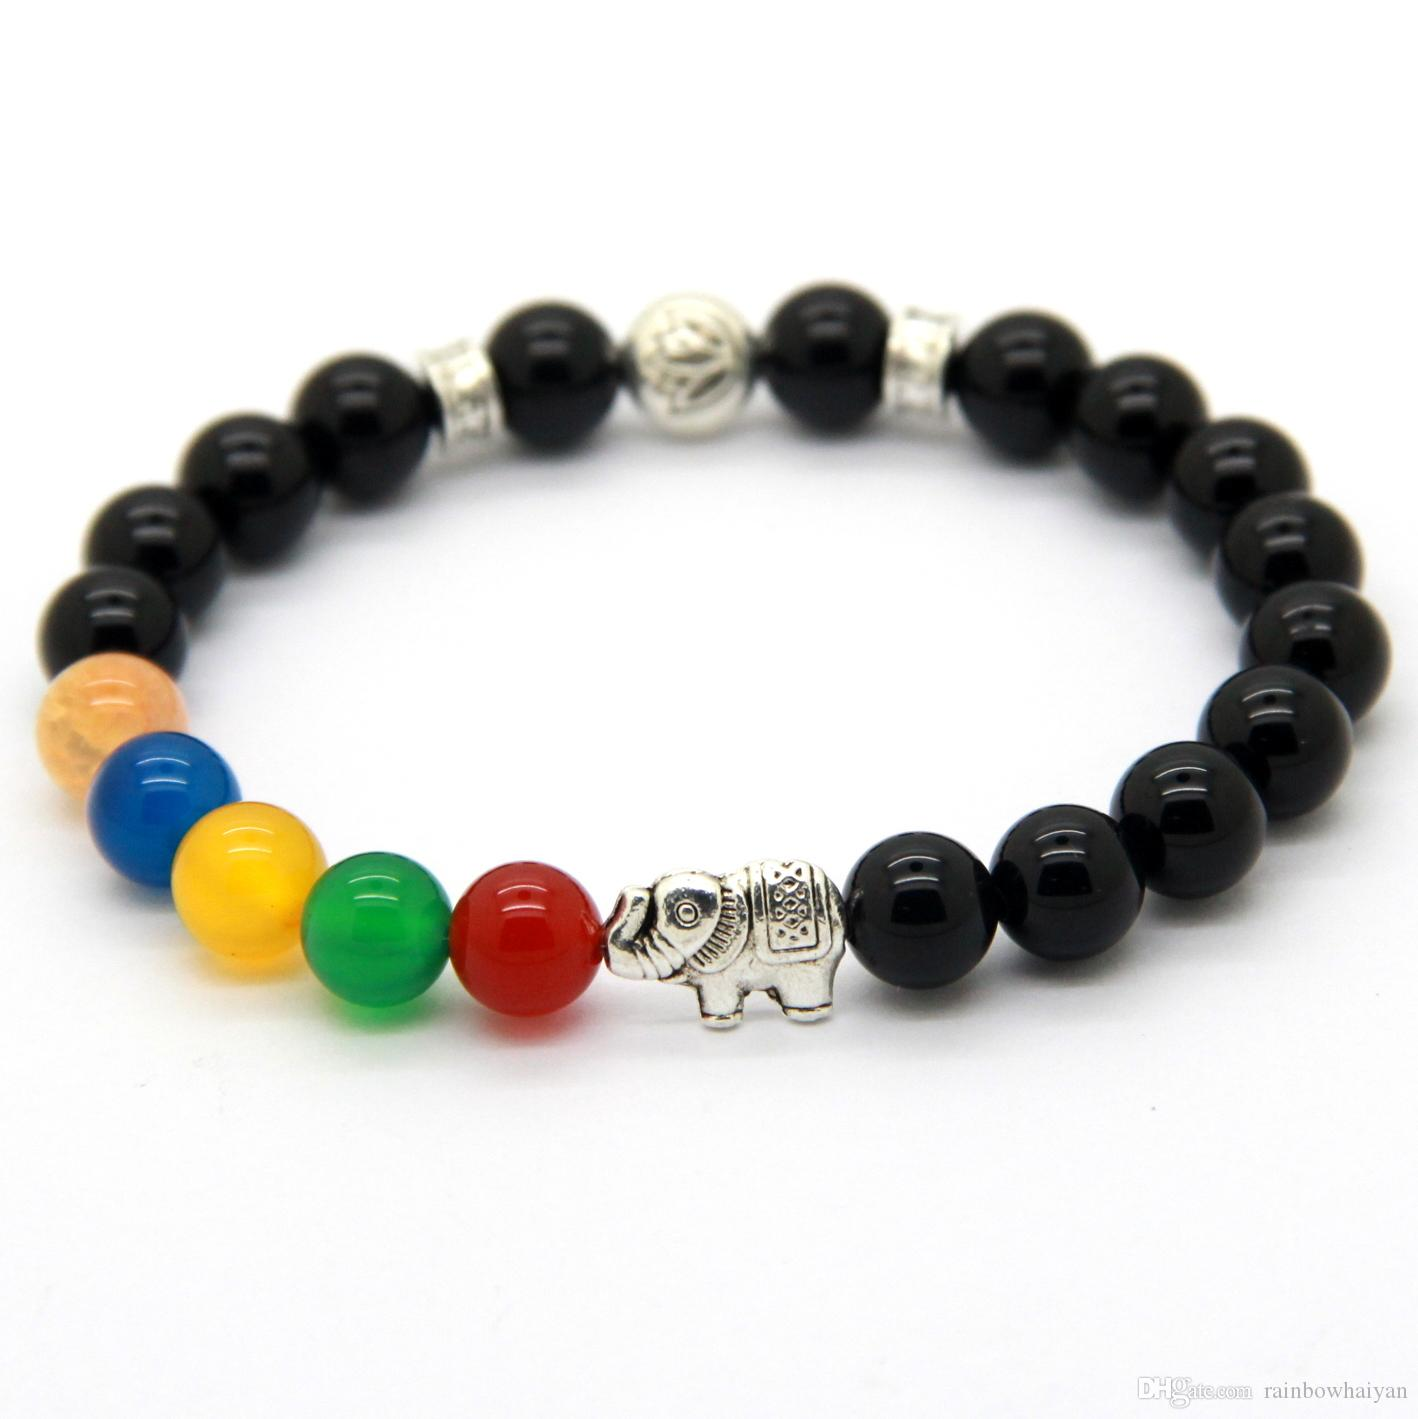 bracelet image good bali luck company products friendship cargo